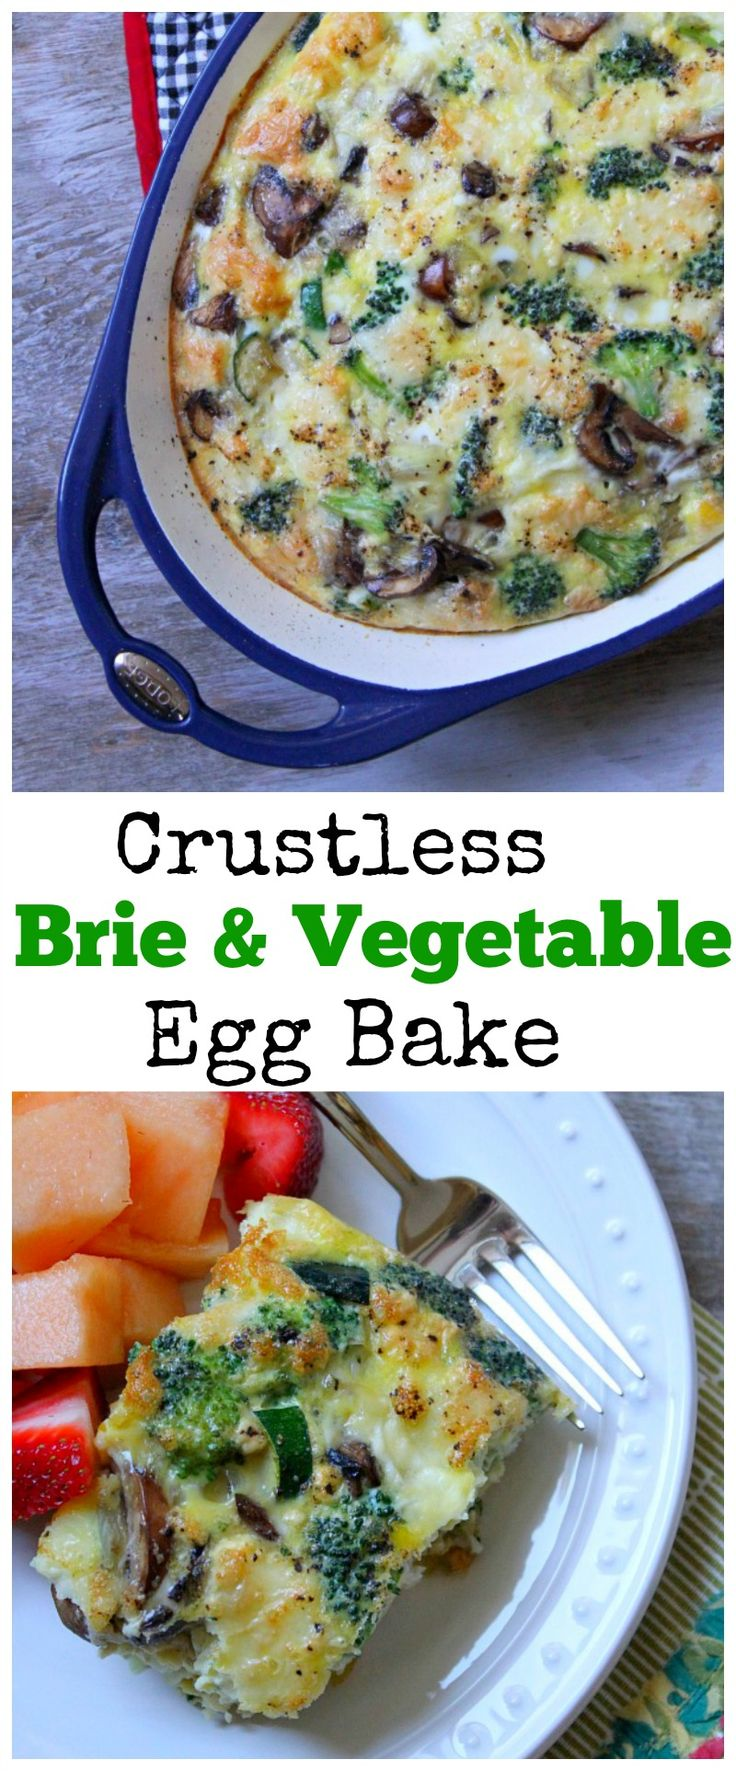 Crustless Brie & Vegetable Egg Bake #breakfast #brunch #recipe